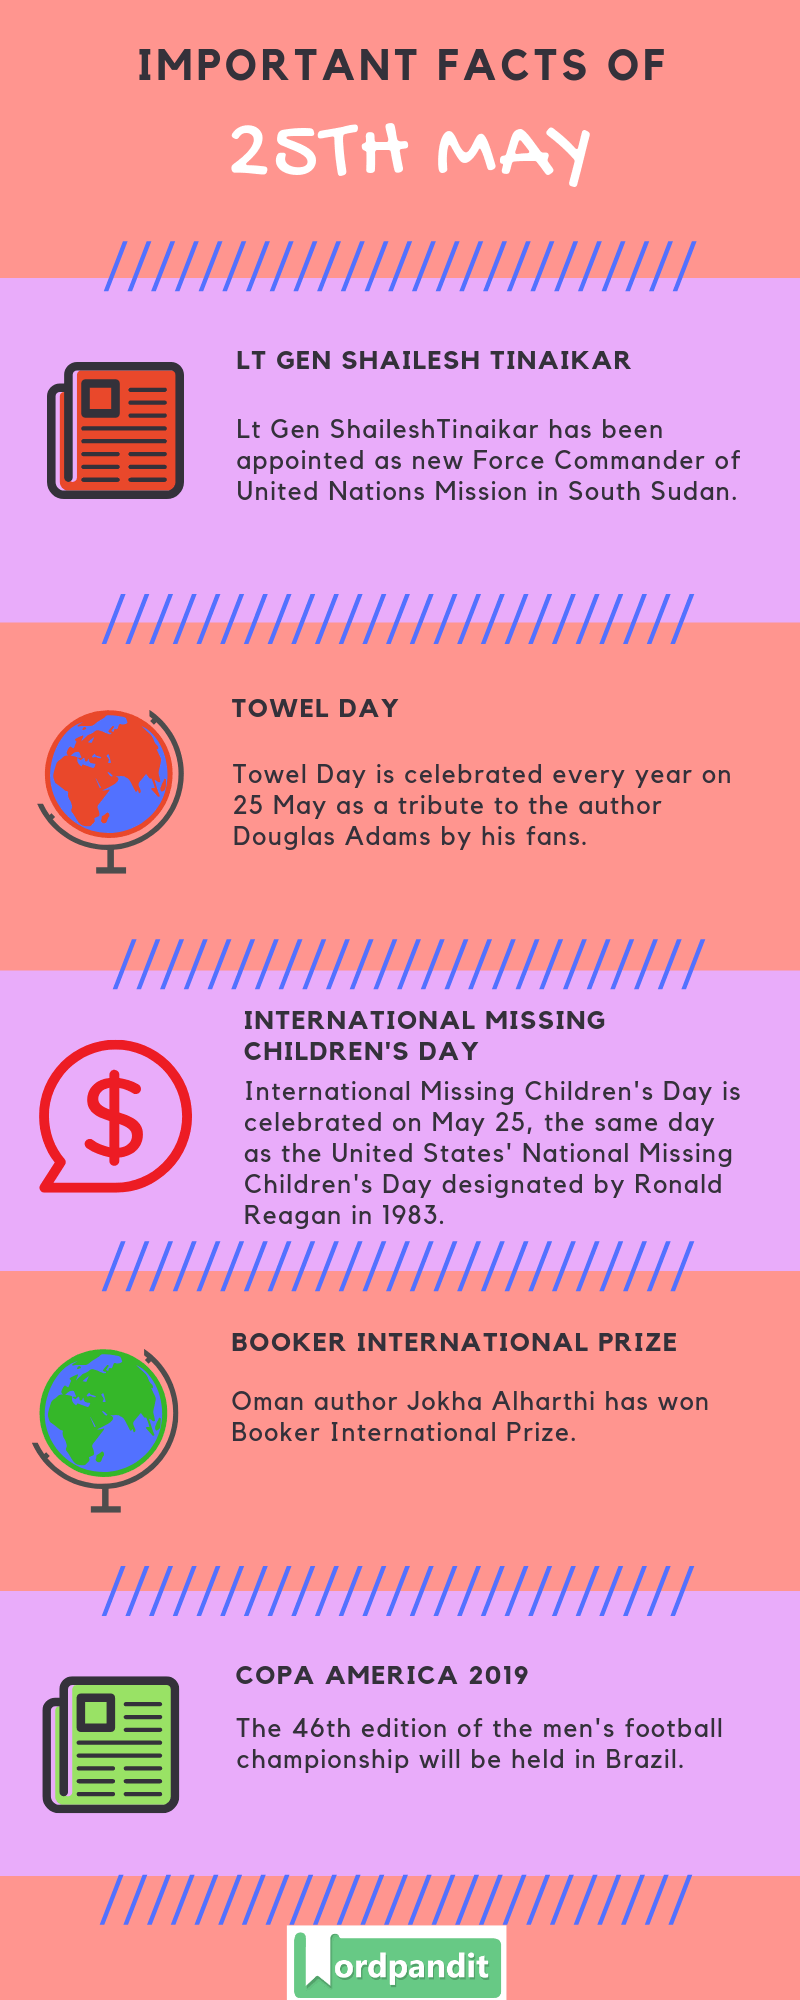 Daily Current Affairs 25 May 2019 Current Affairs Quiz 25 May 2019 Current Affairs Infographic